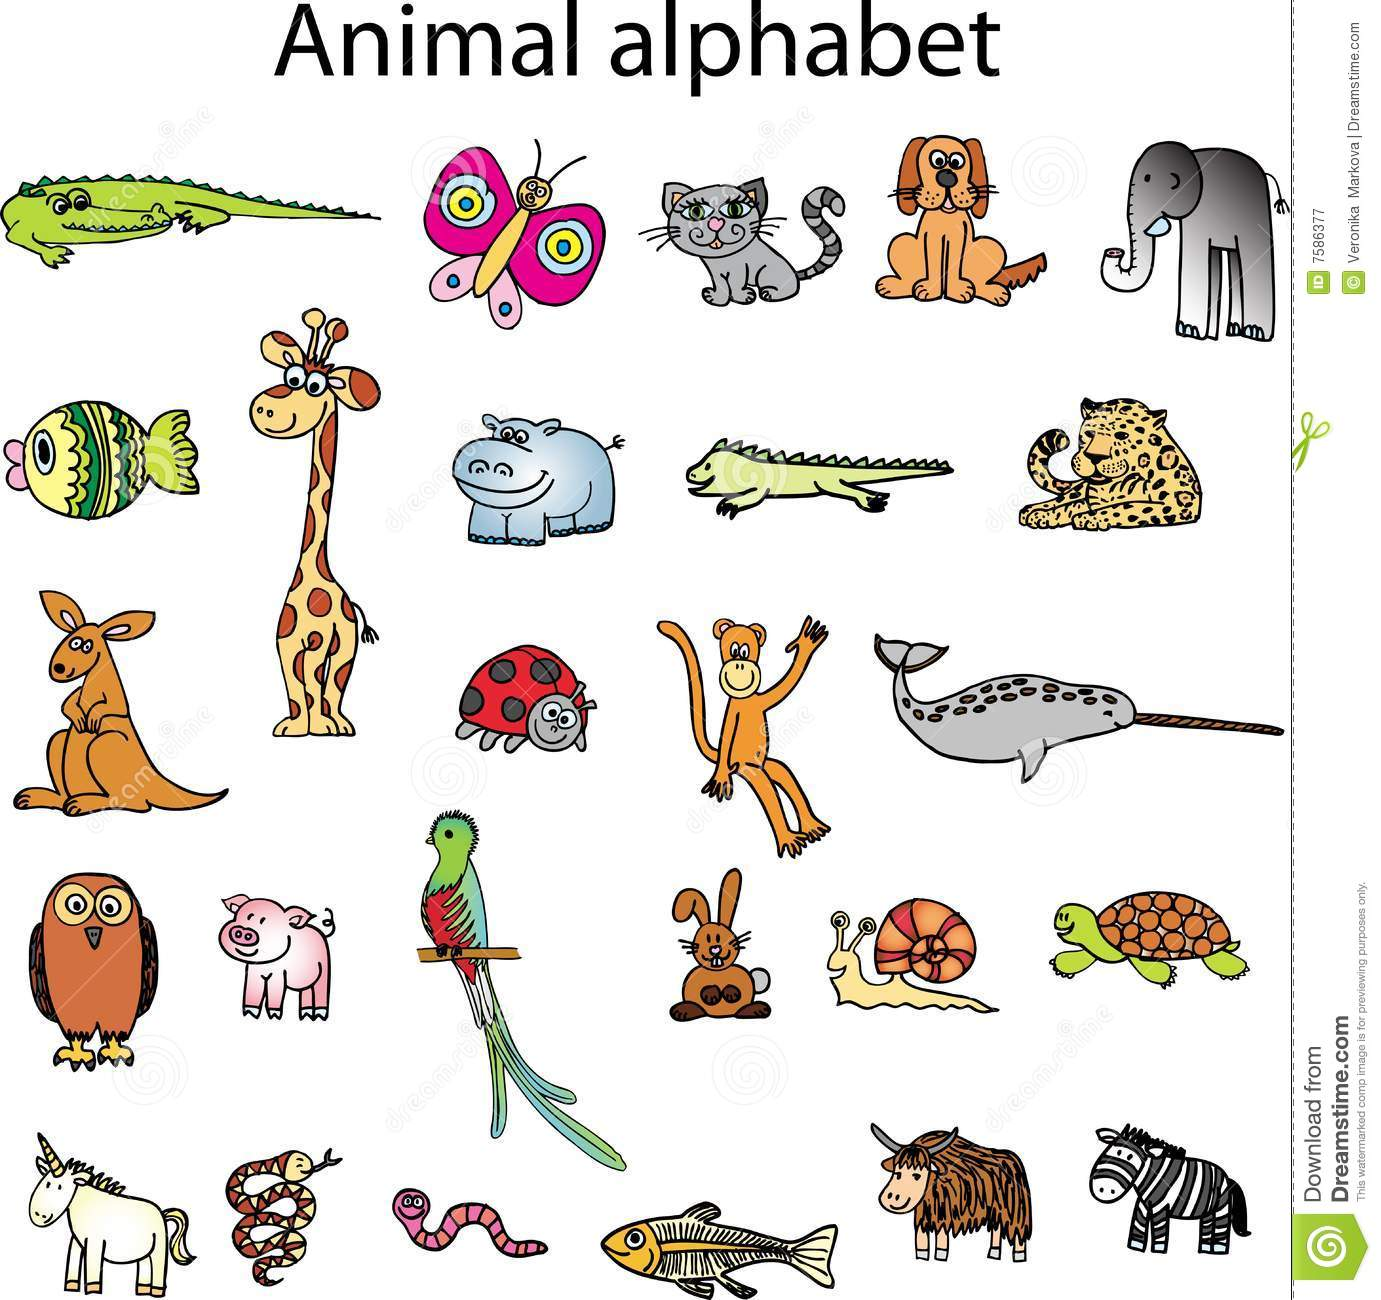 Animals From Animal Alphabet Royalty Free Stock